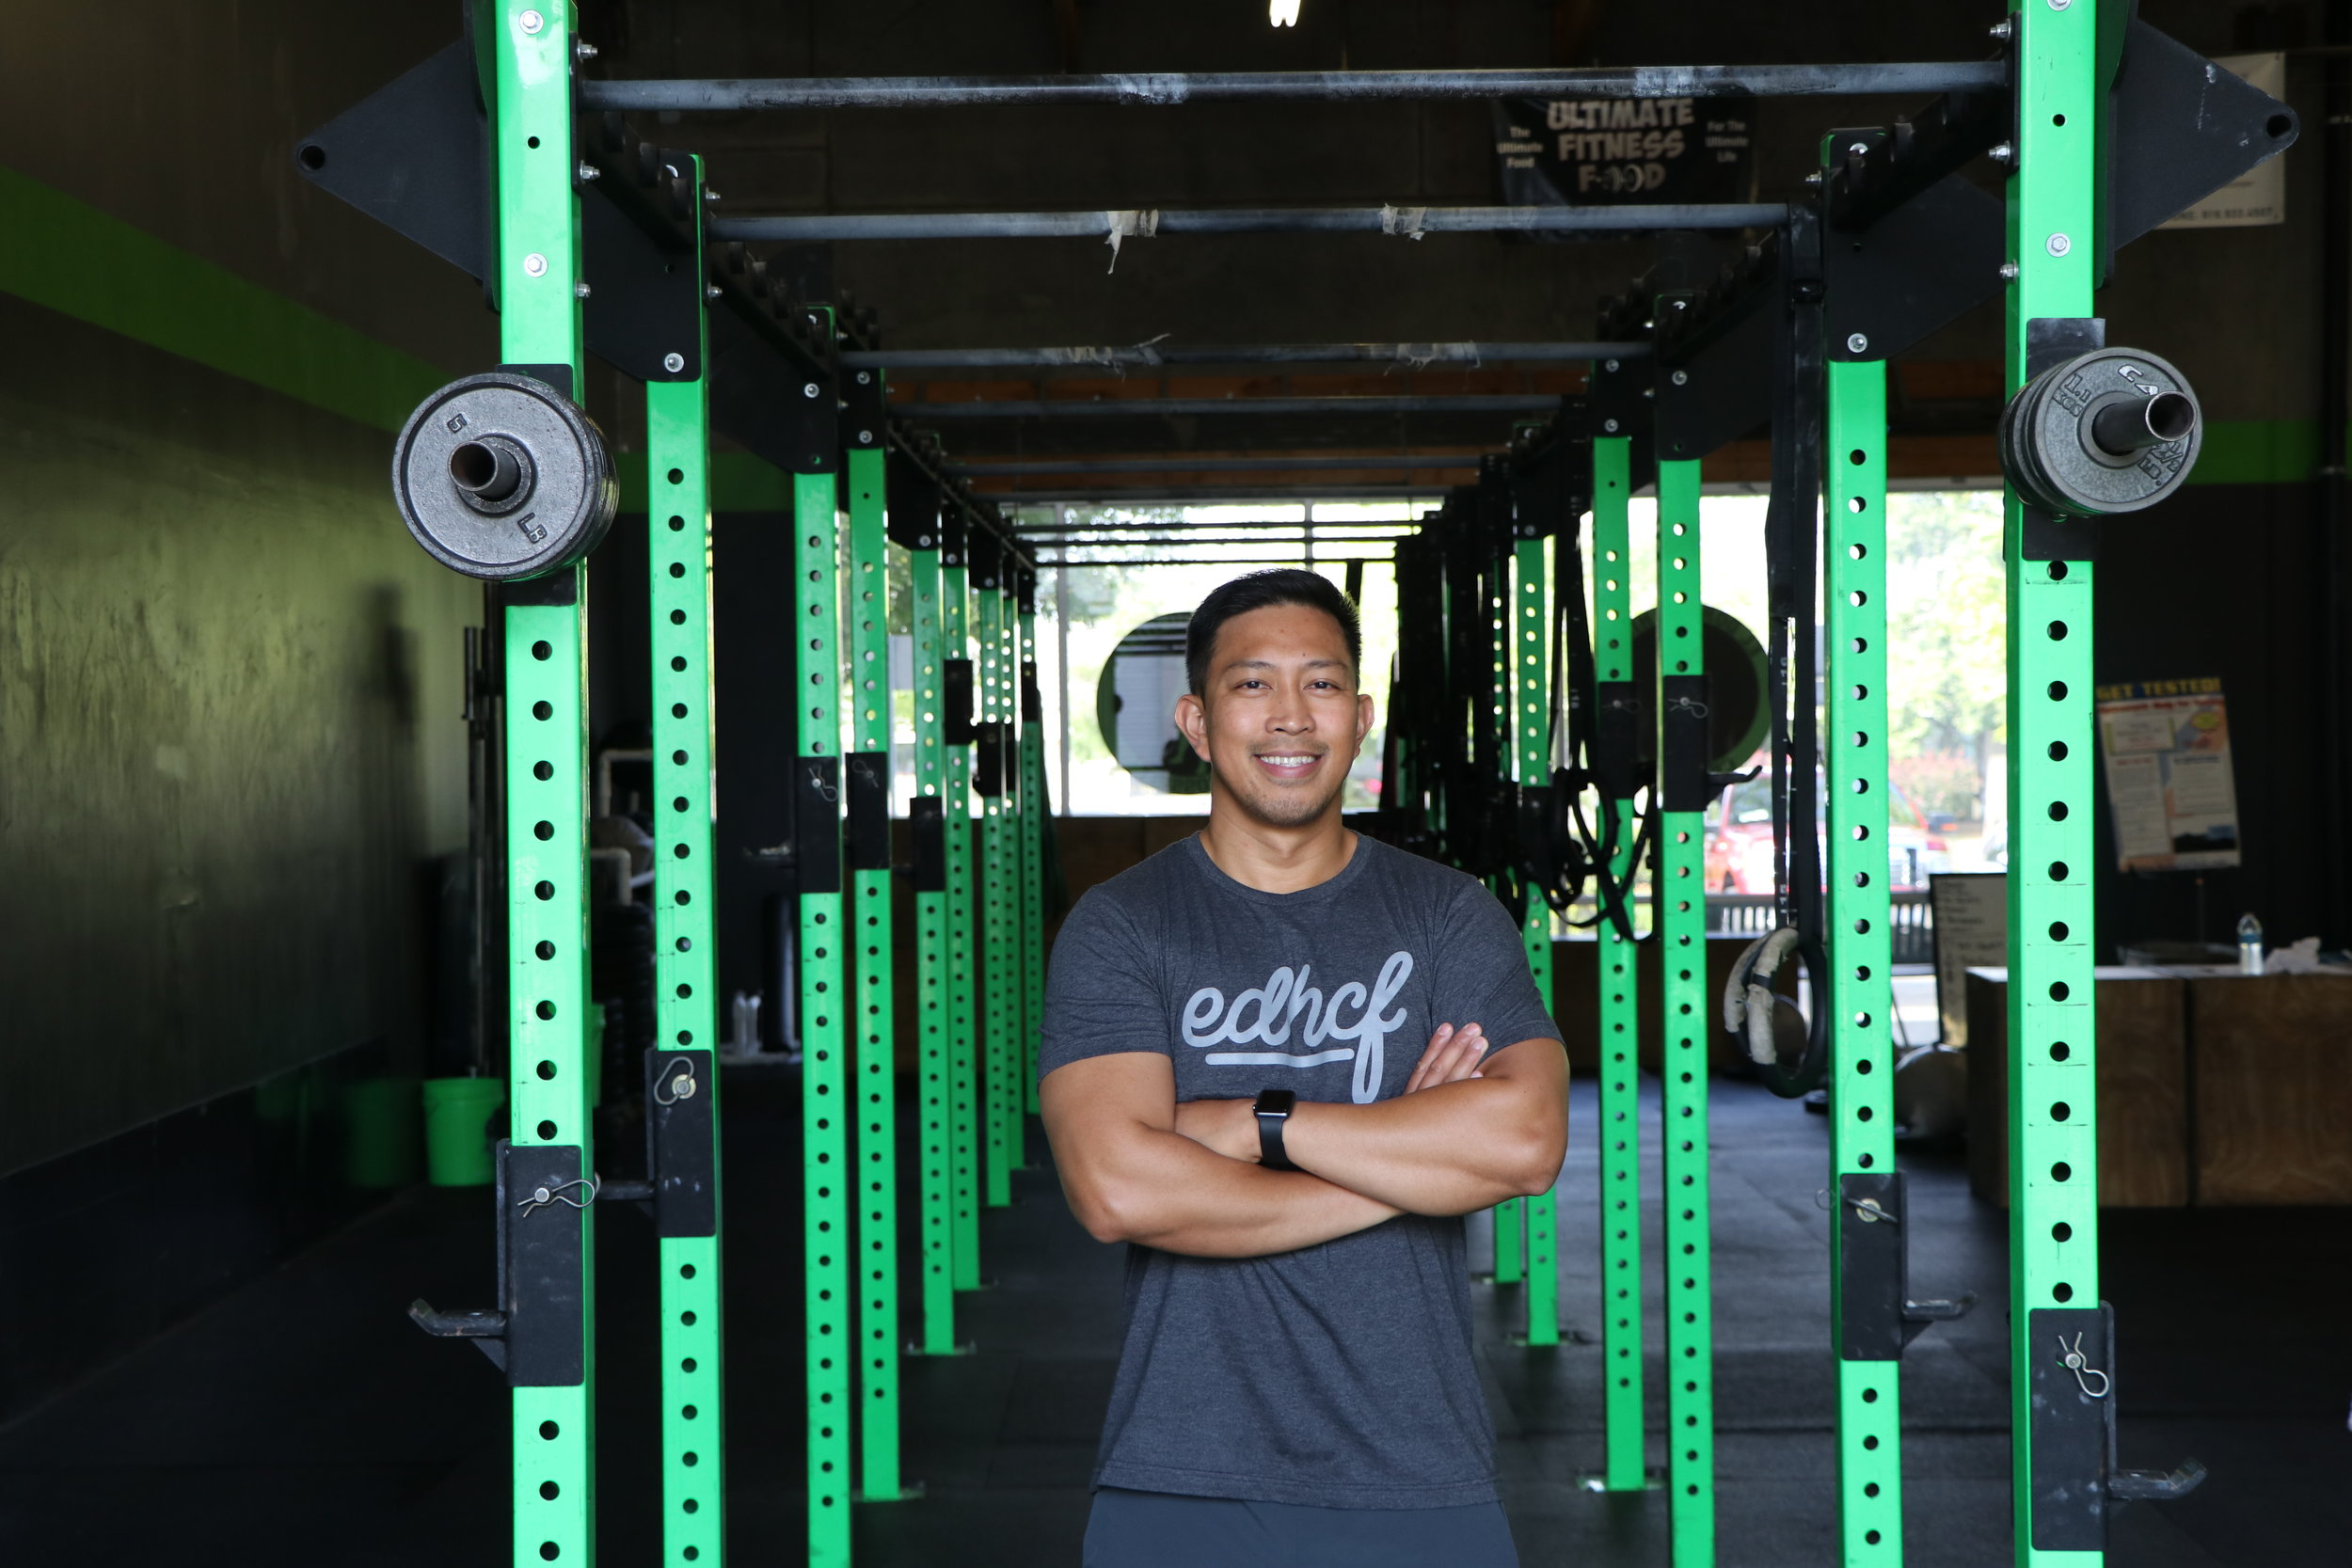 "BILLY TANGONAN Coach   Billy is a Coach at El Dorado Hills CrossFit who grew up playing football and basketball. As an adult, he was looking for a fresh start and a new challenge and CrossFit gave him all that and more. He found El Dorado Hills CrossFit, where he became a member and eventually a coach. It was the best decision he's ever made.  ""I love motivating and helping people reach their fullest potential. A healthy lifestyle can change both your body and mind to create the best version of yourself. If you believe it, you can definitely achieve it!""  CERTIFICATIONS: CrossFit Level 1"